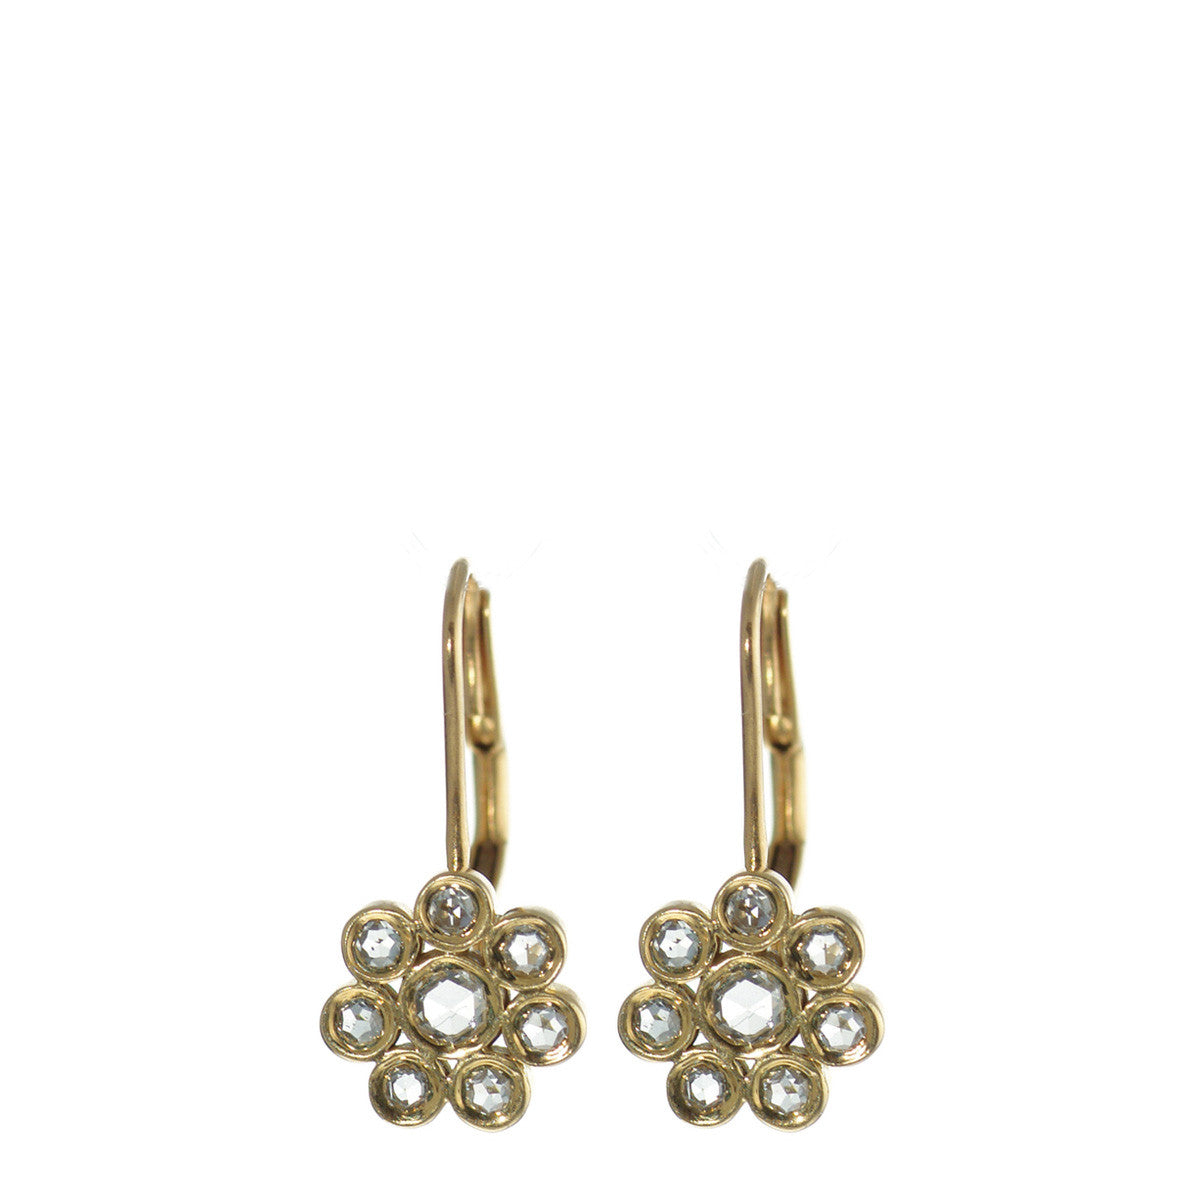 18K Gold Diamond Flower Earrings